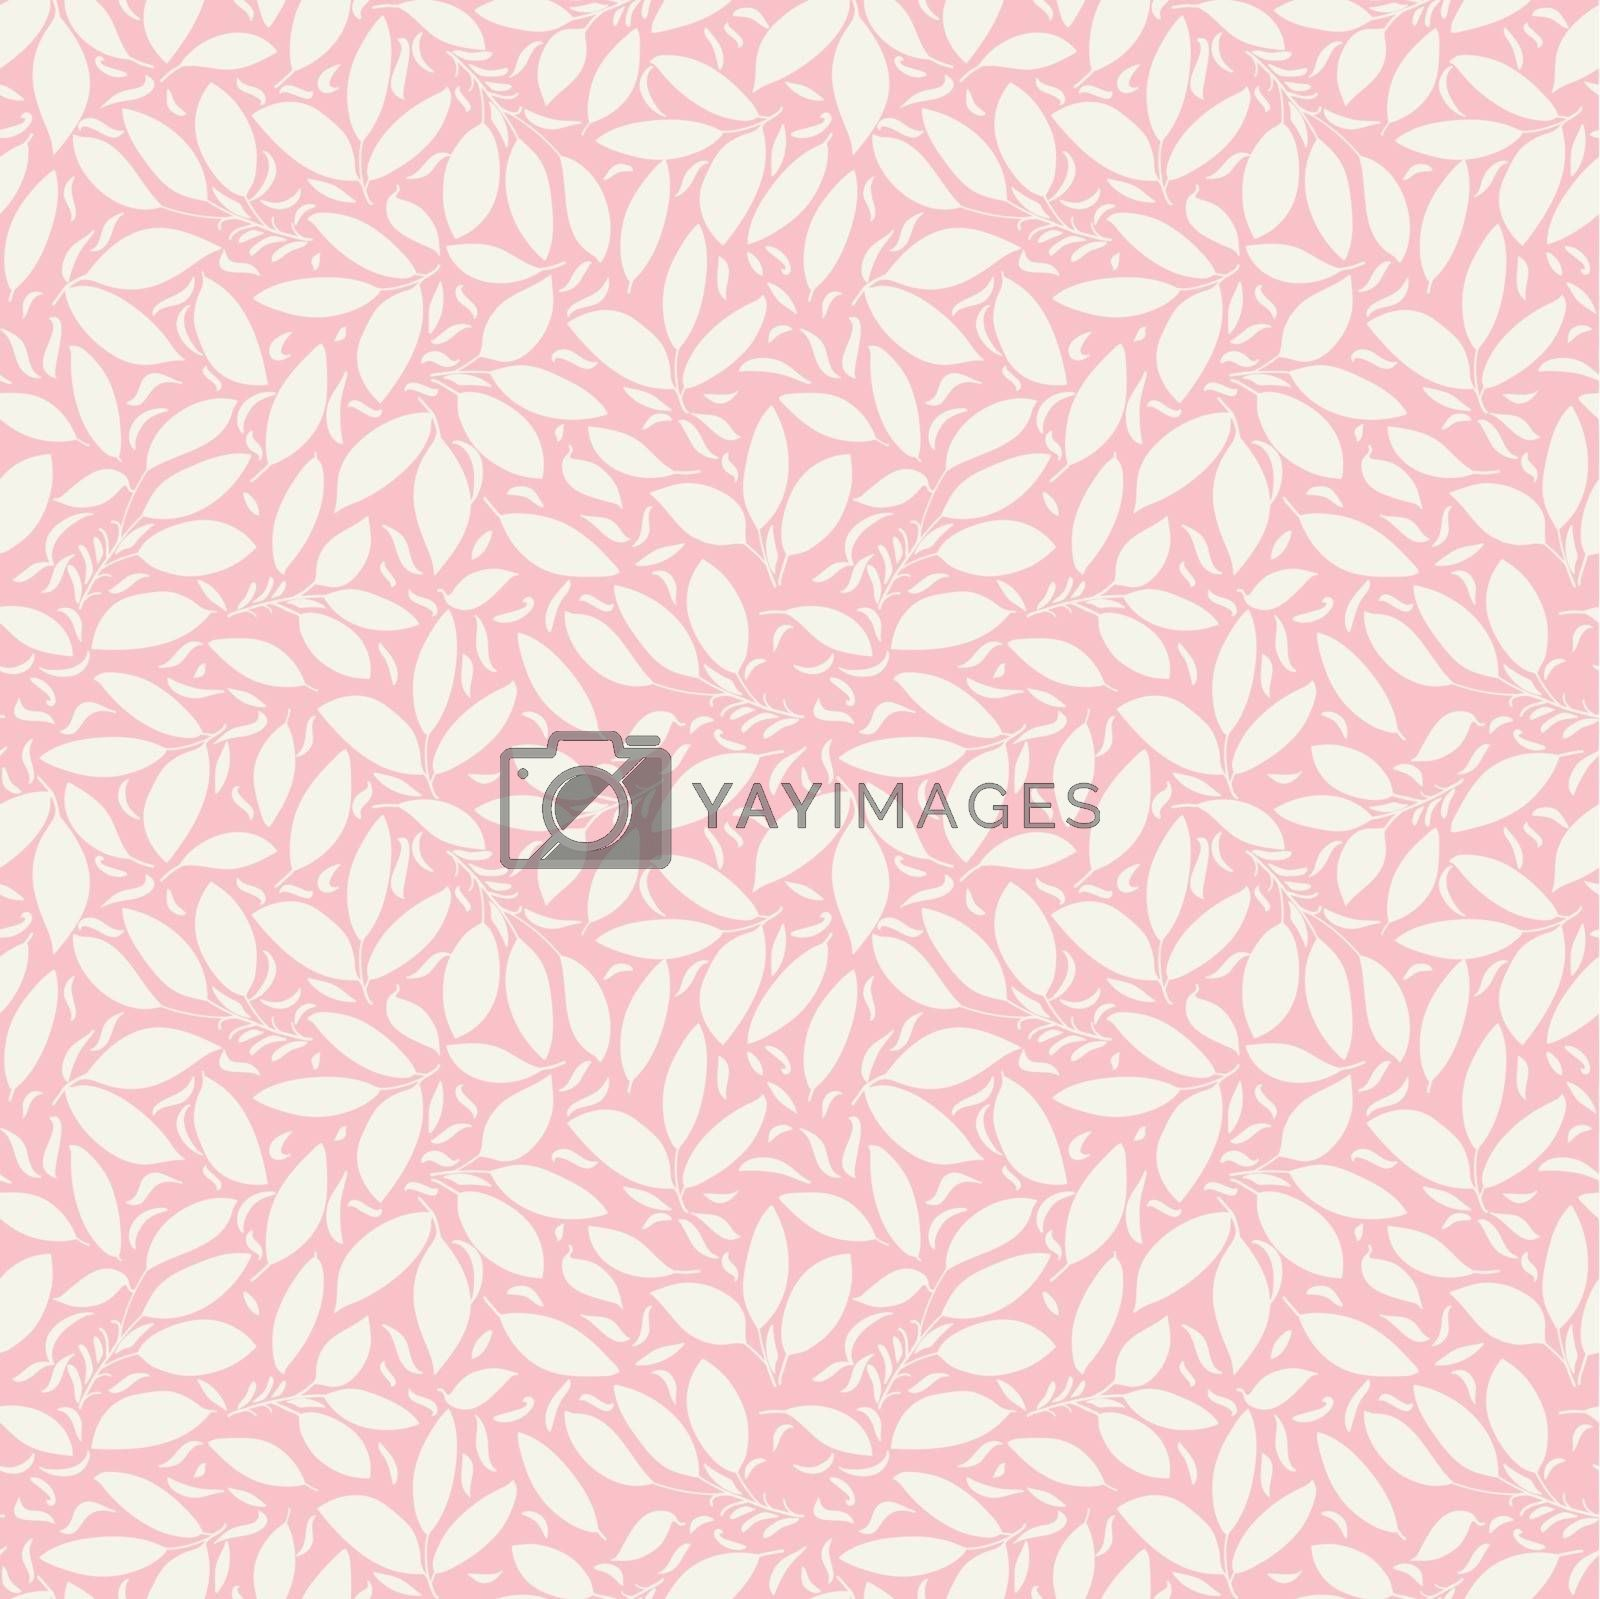 pink texture with berries and flowers silhouettes. Use as a fill pattern, backdrop, seamless texture